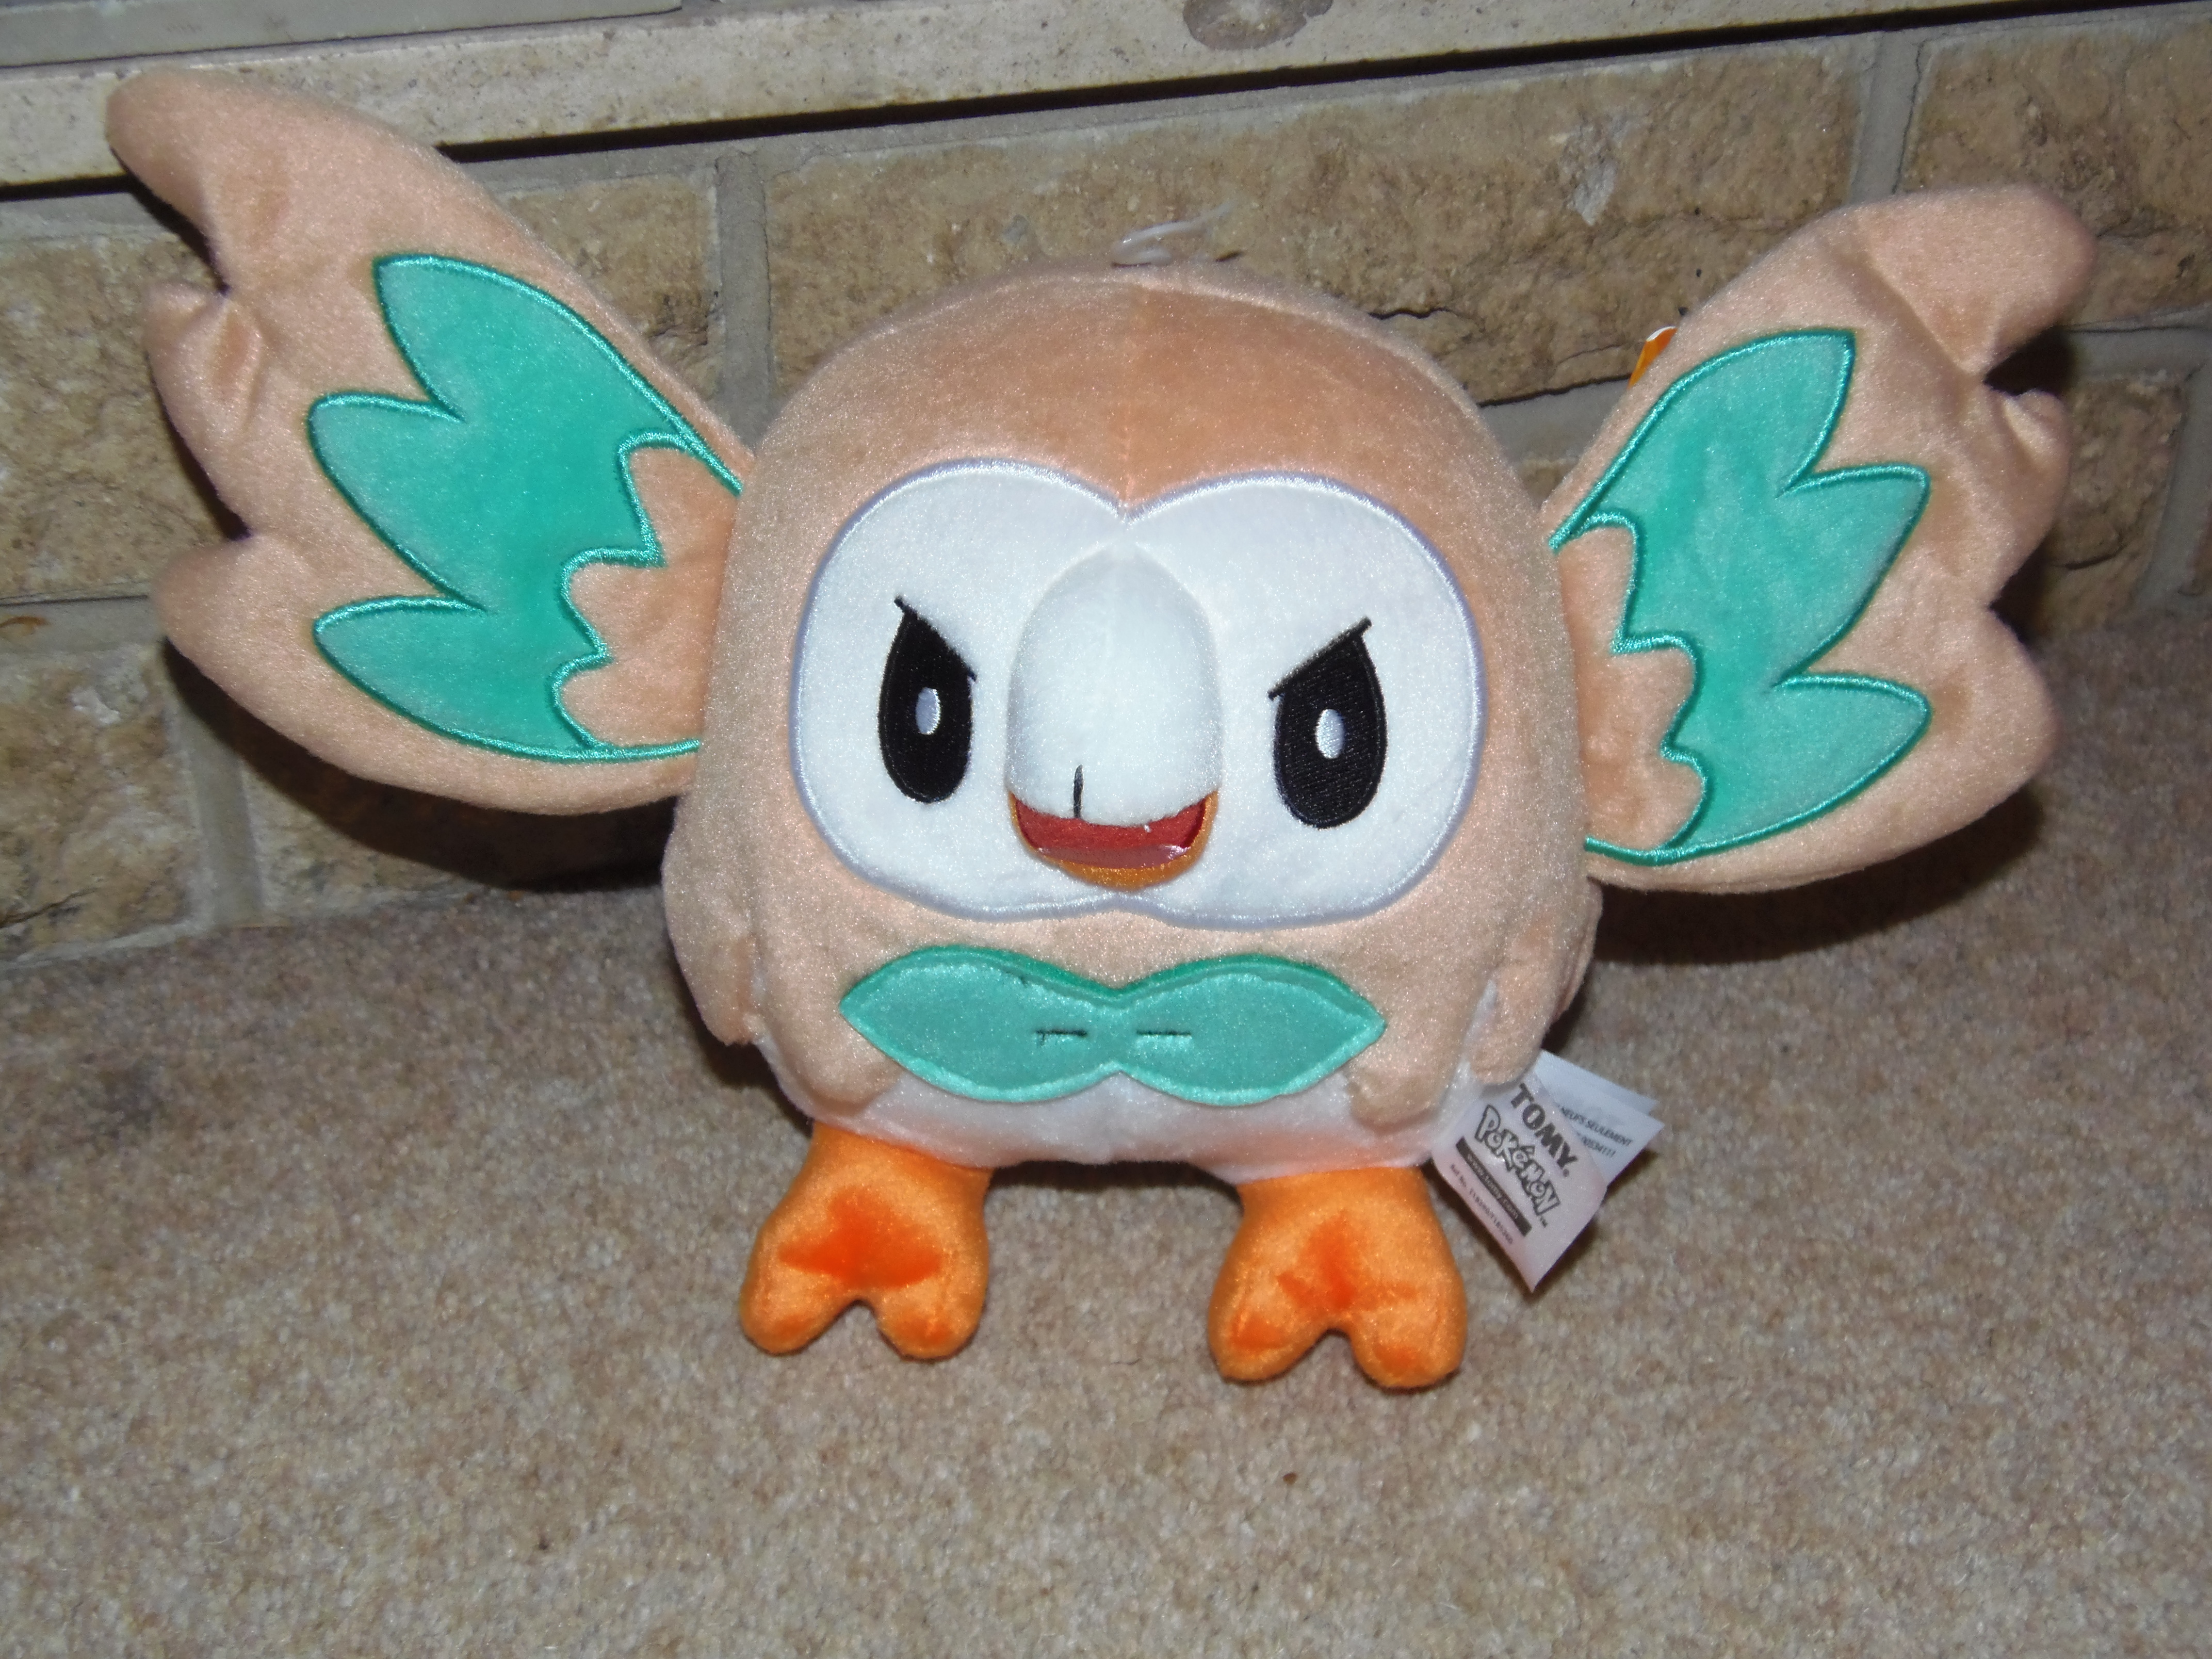 Owlet Plush from Tomy